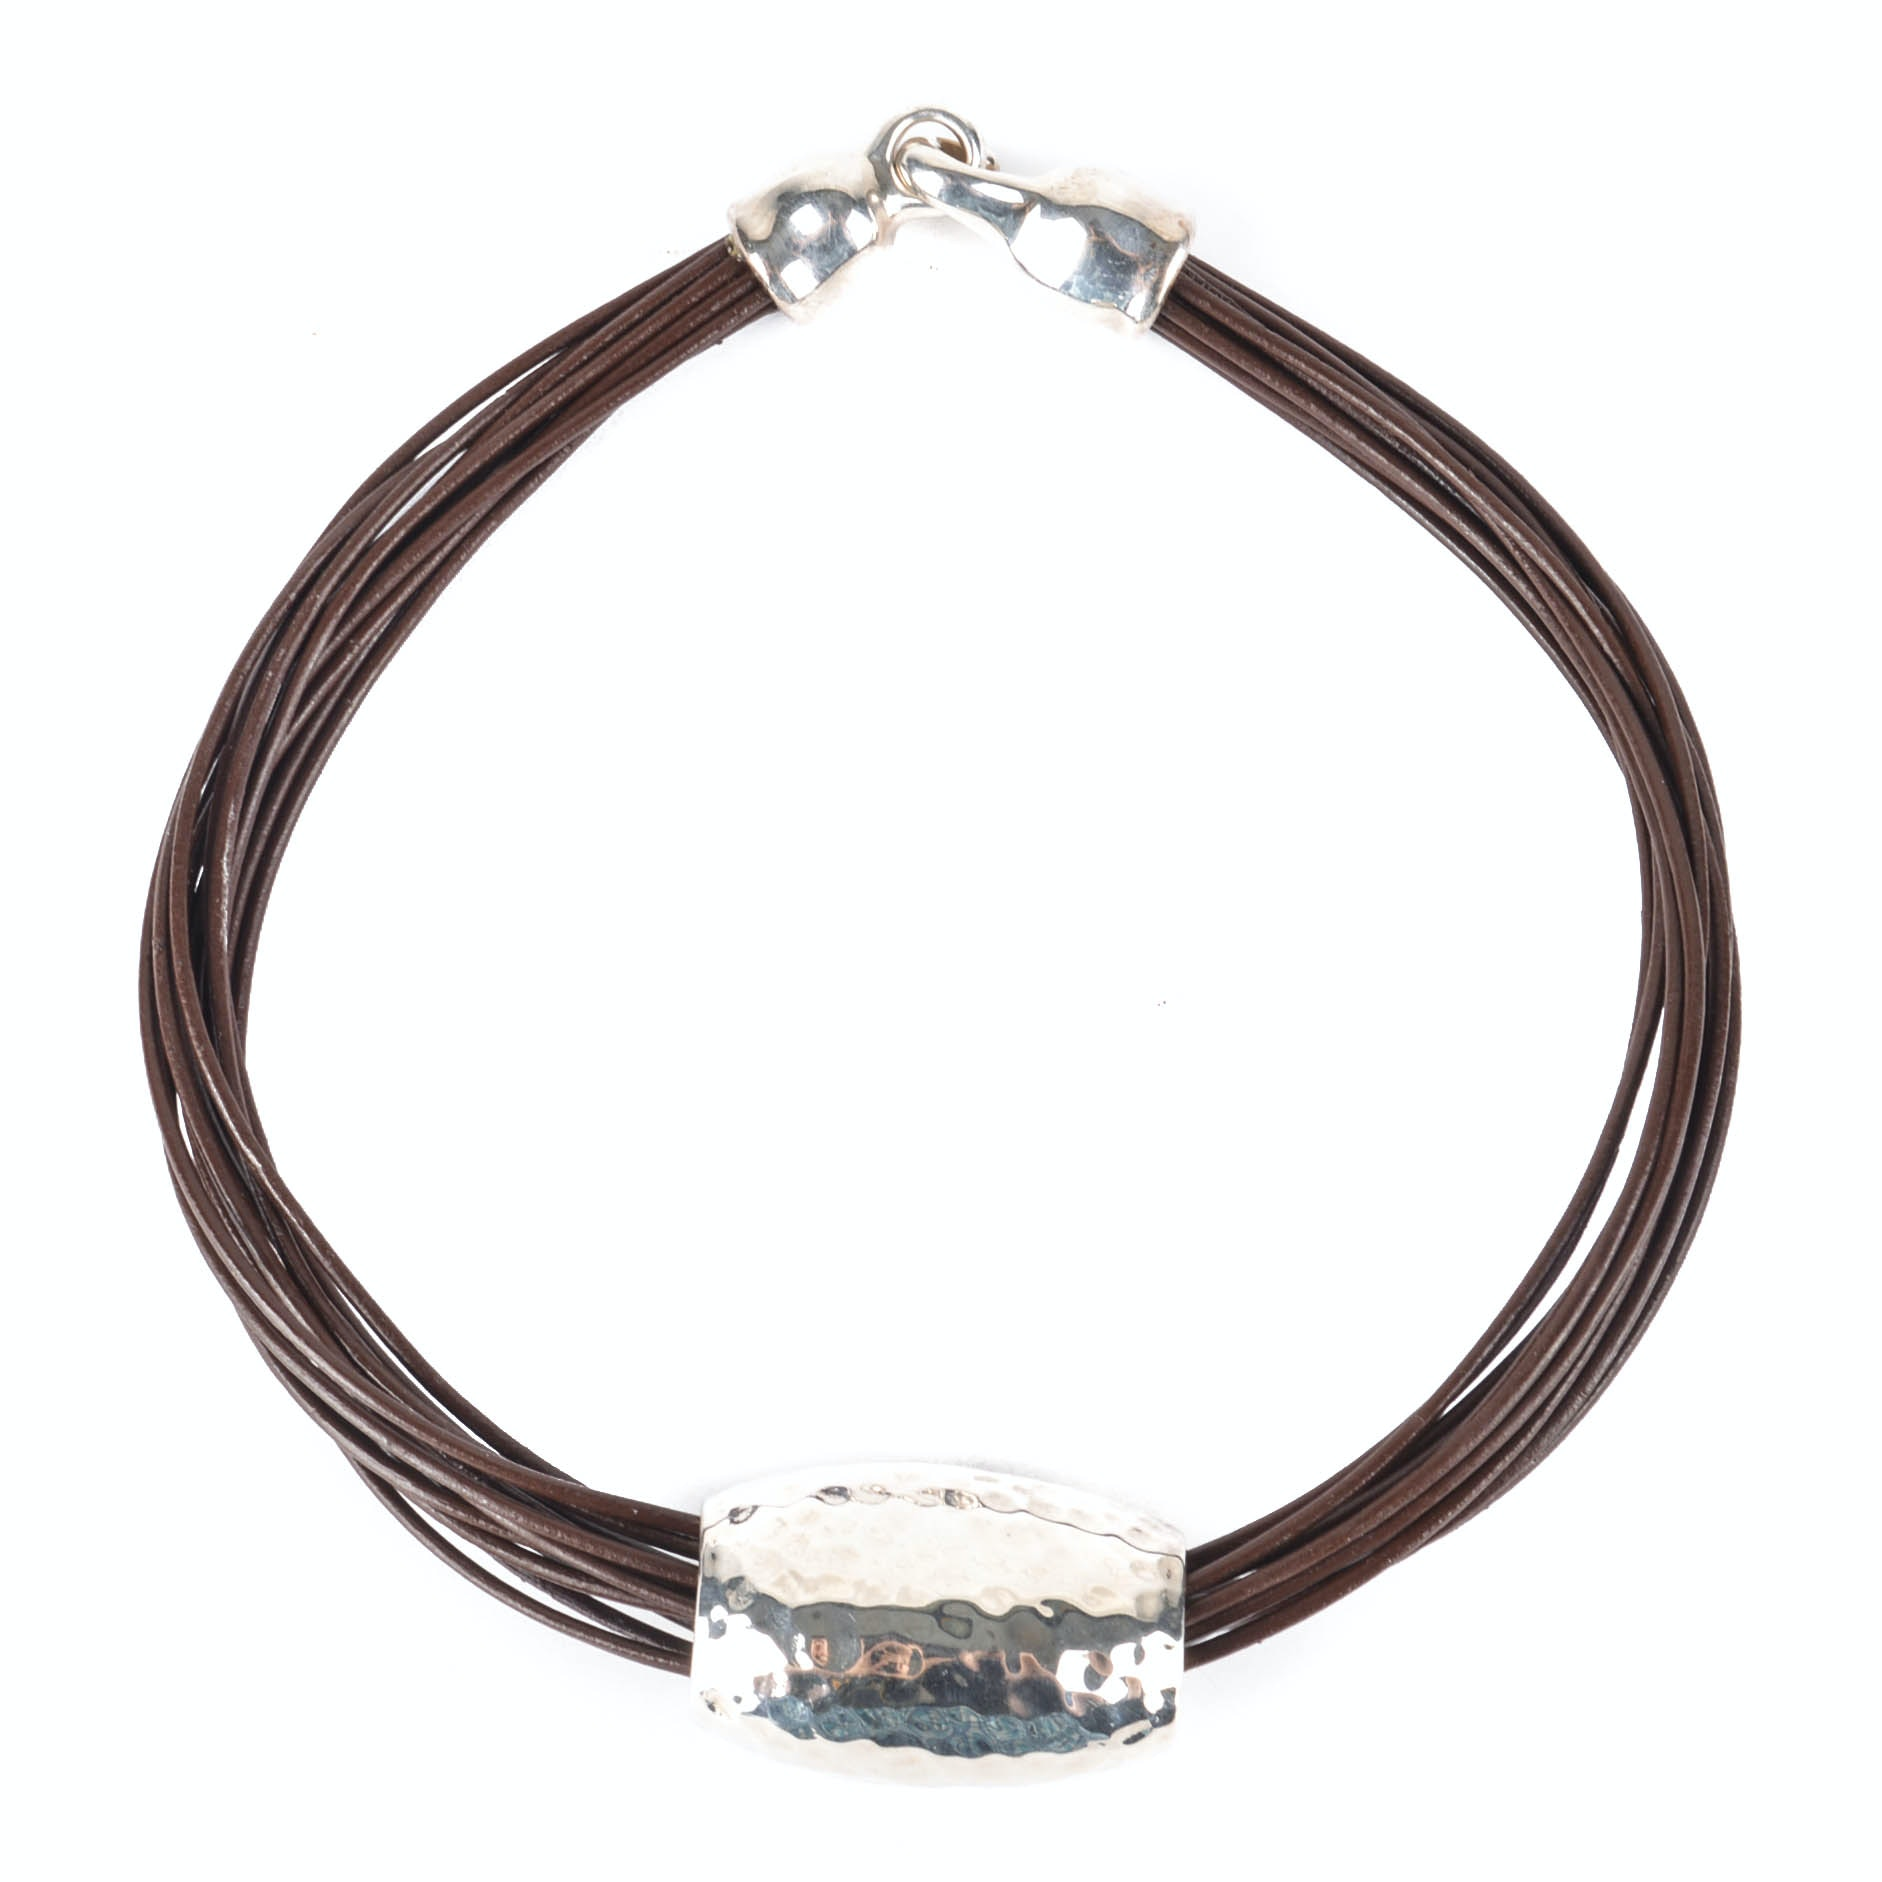 Simon Sebbag Designs Sterling Silver and Leather Necklace